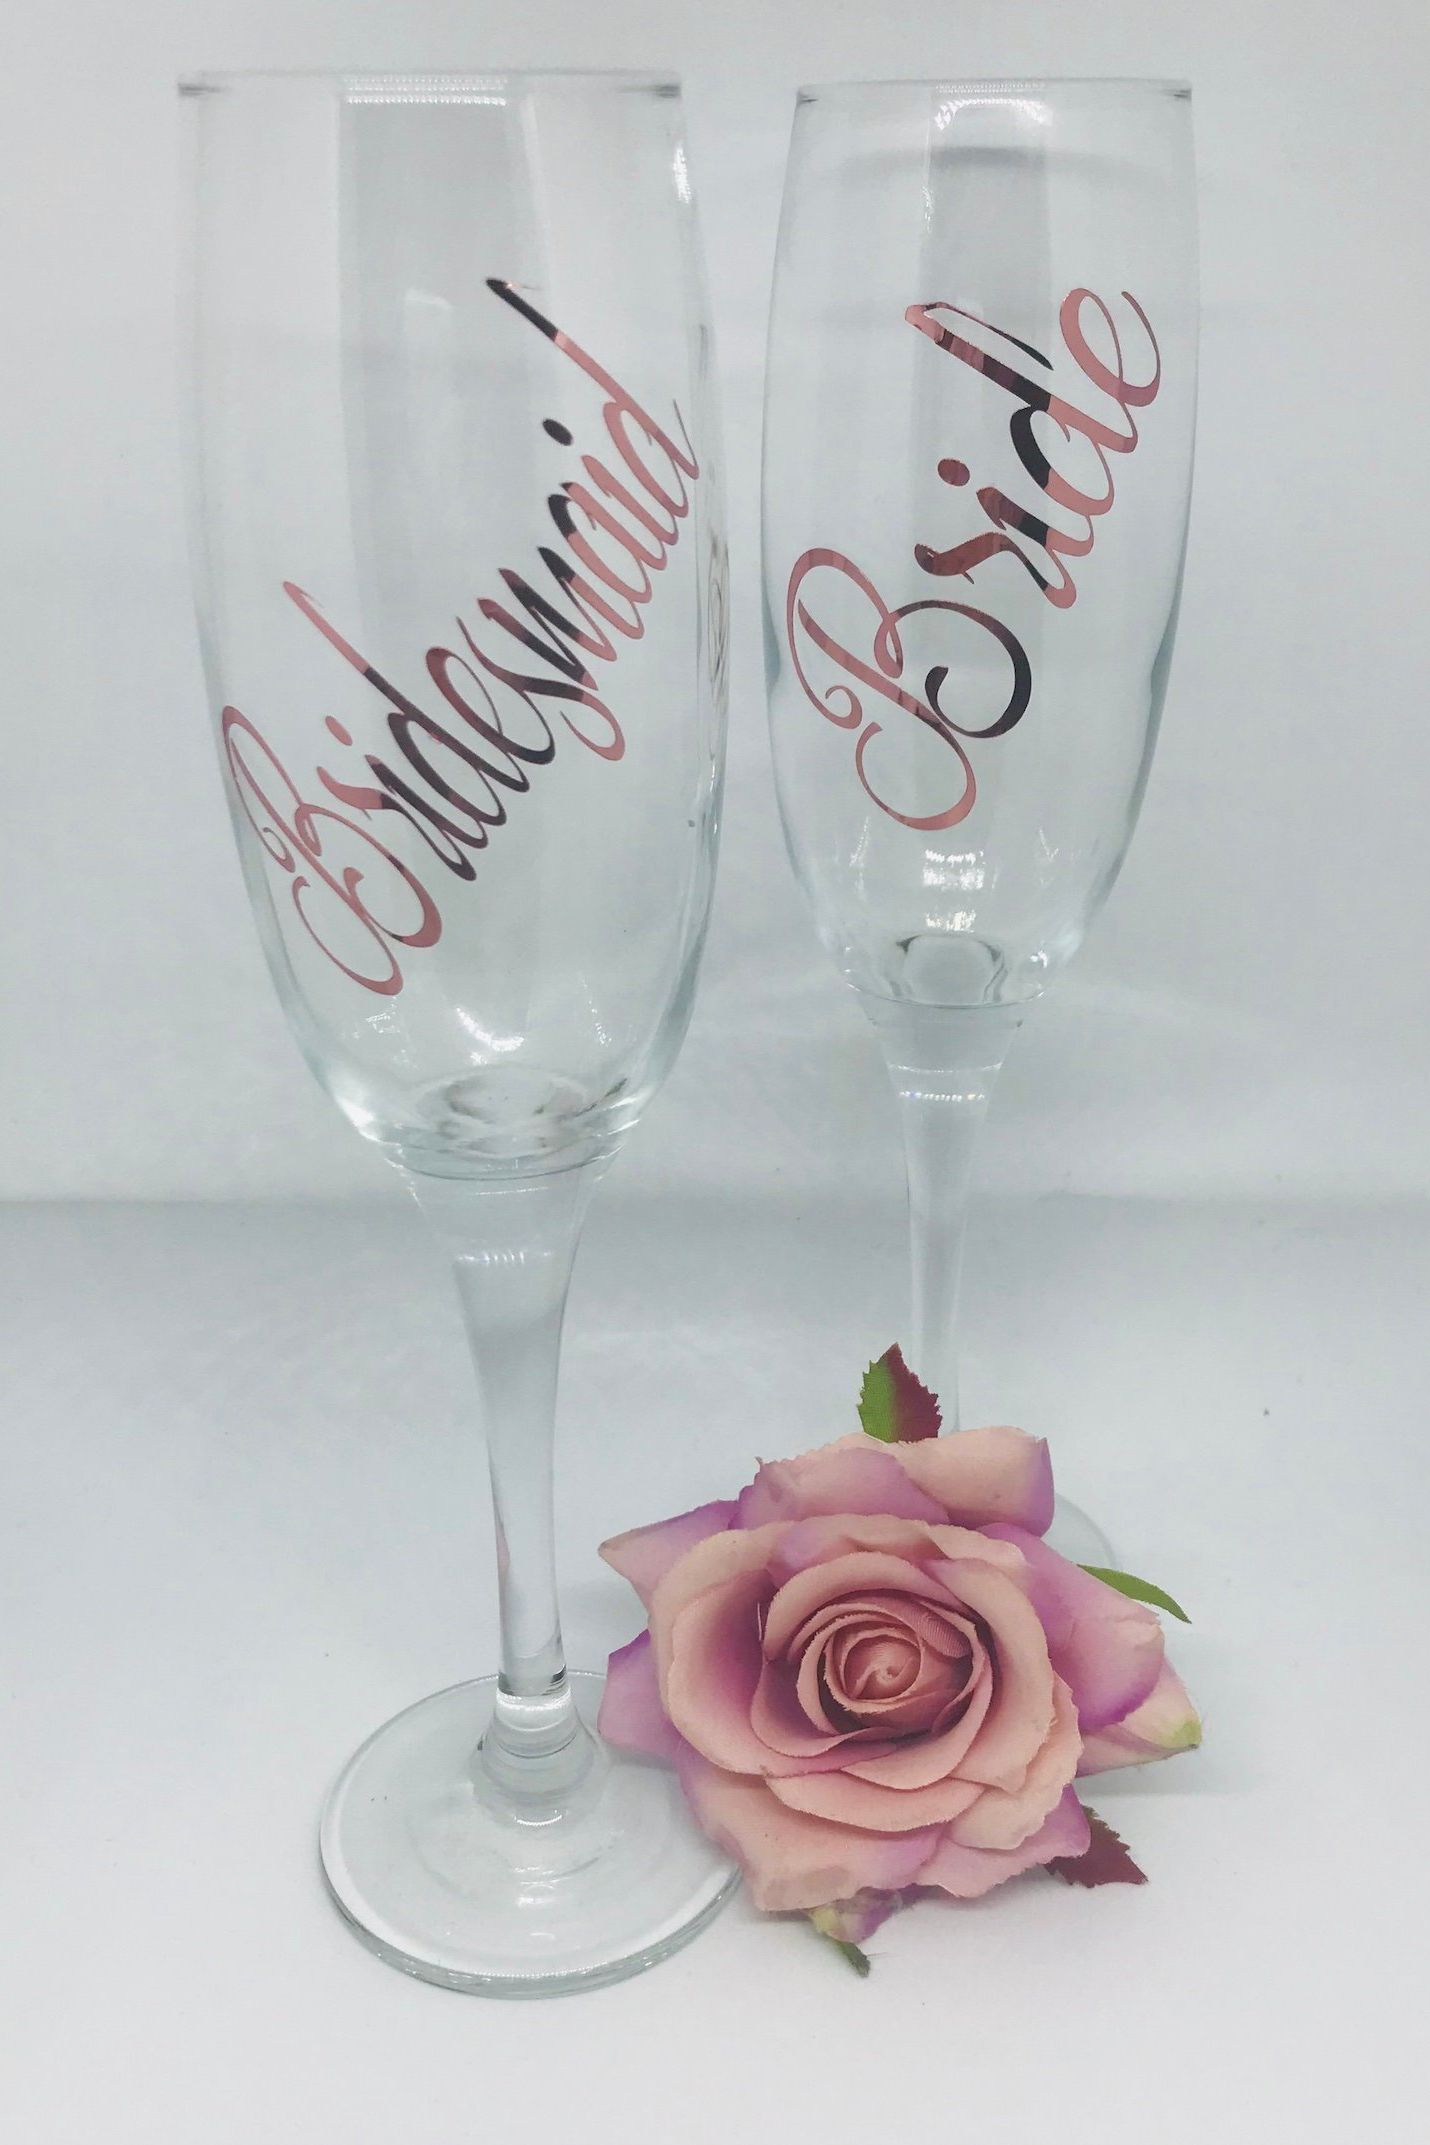 Bride Tribe Maid of Honour Bridesmaid Personalised Champagne glass flute Bride